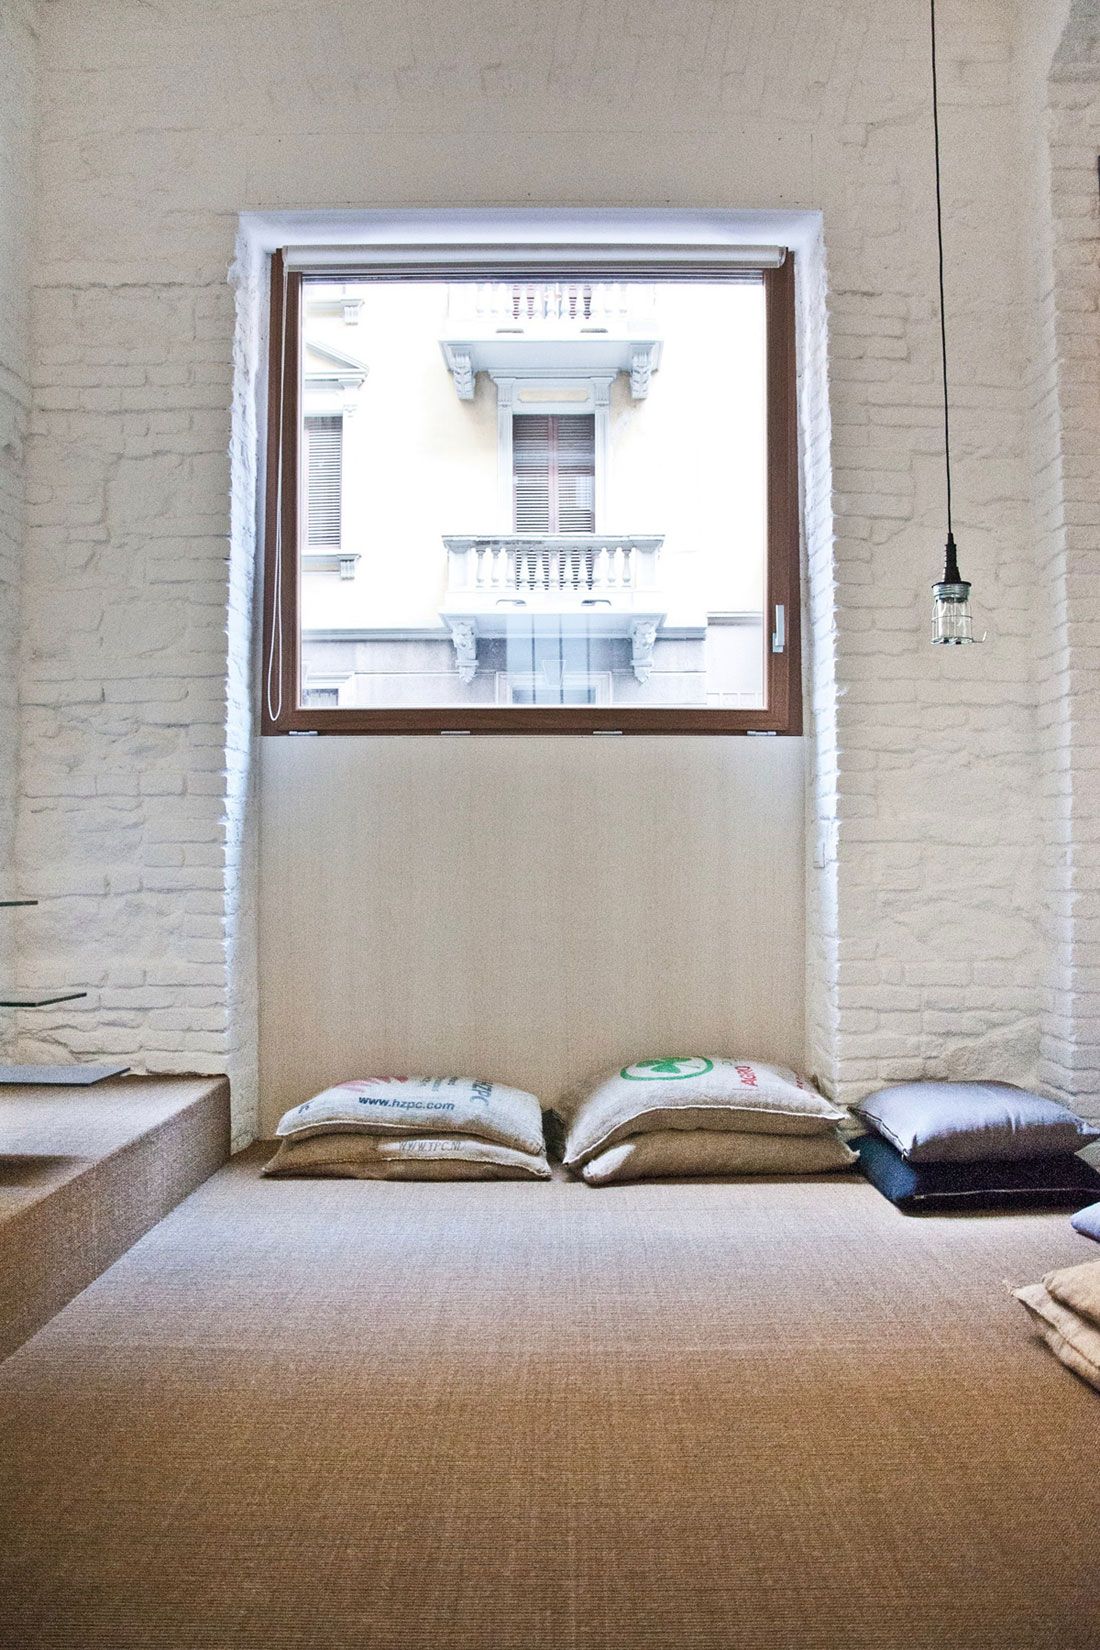 From Shop to Loft by R3architetti (2)